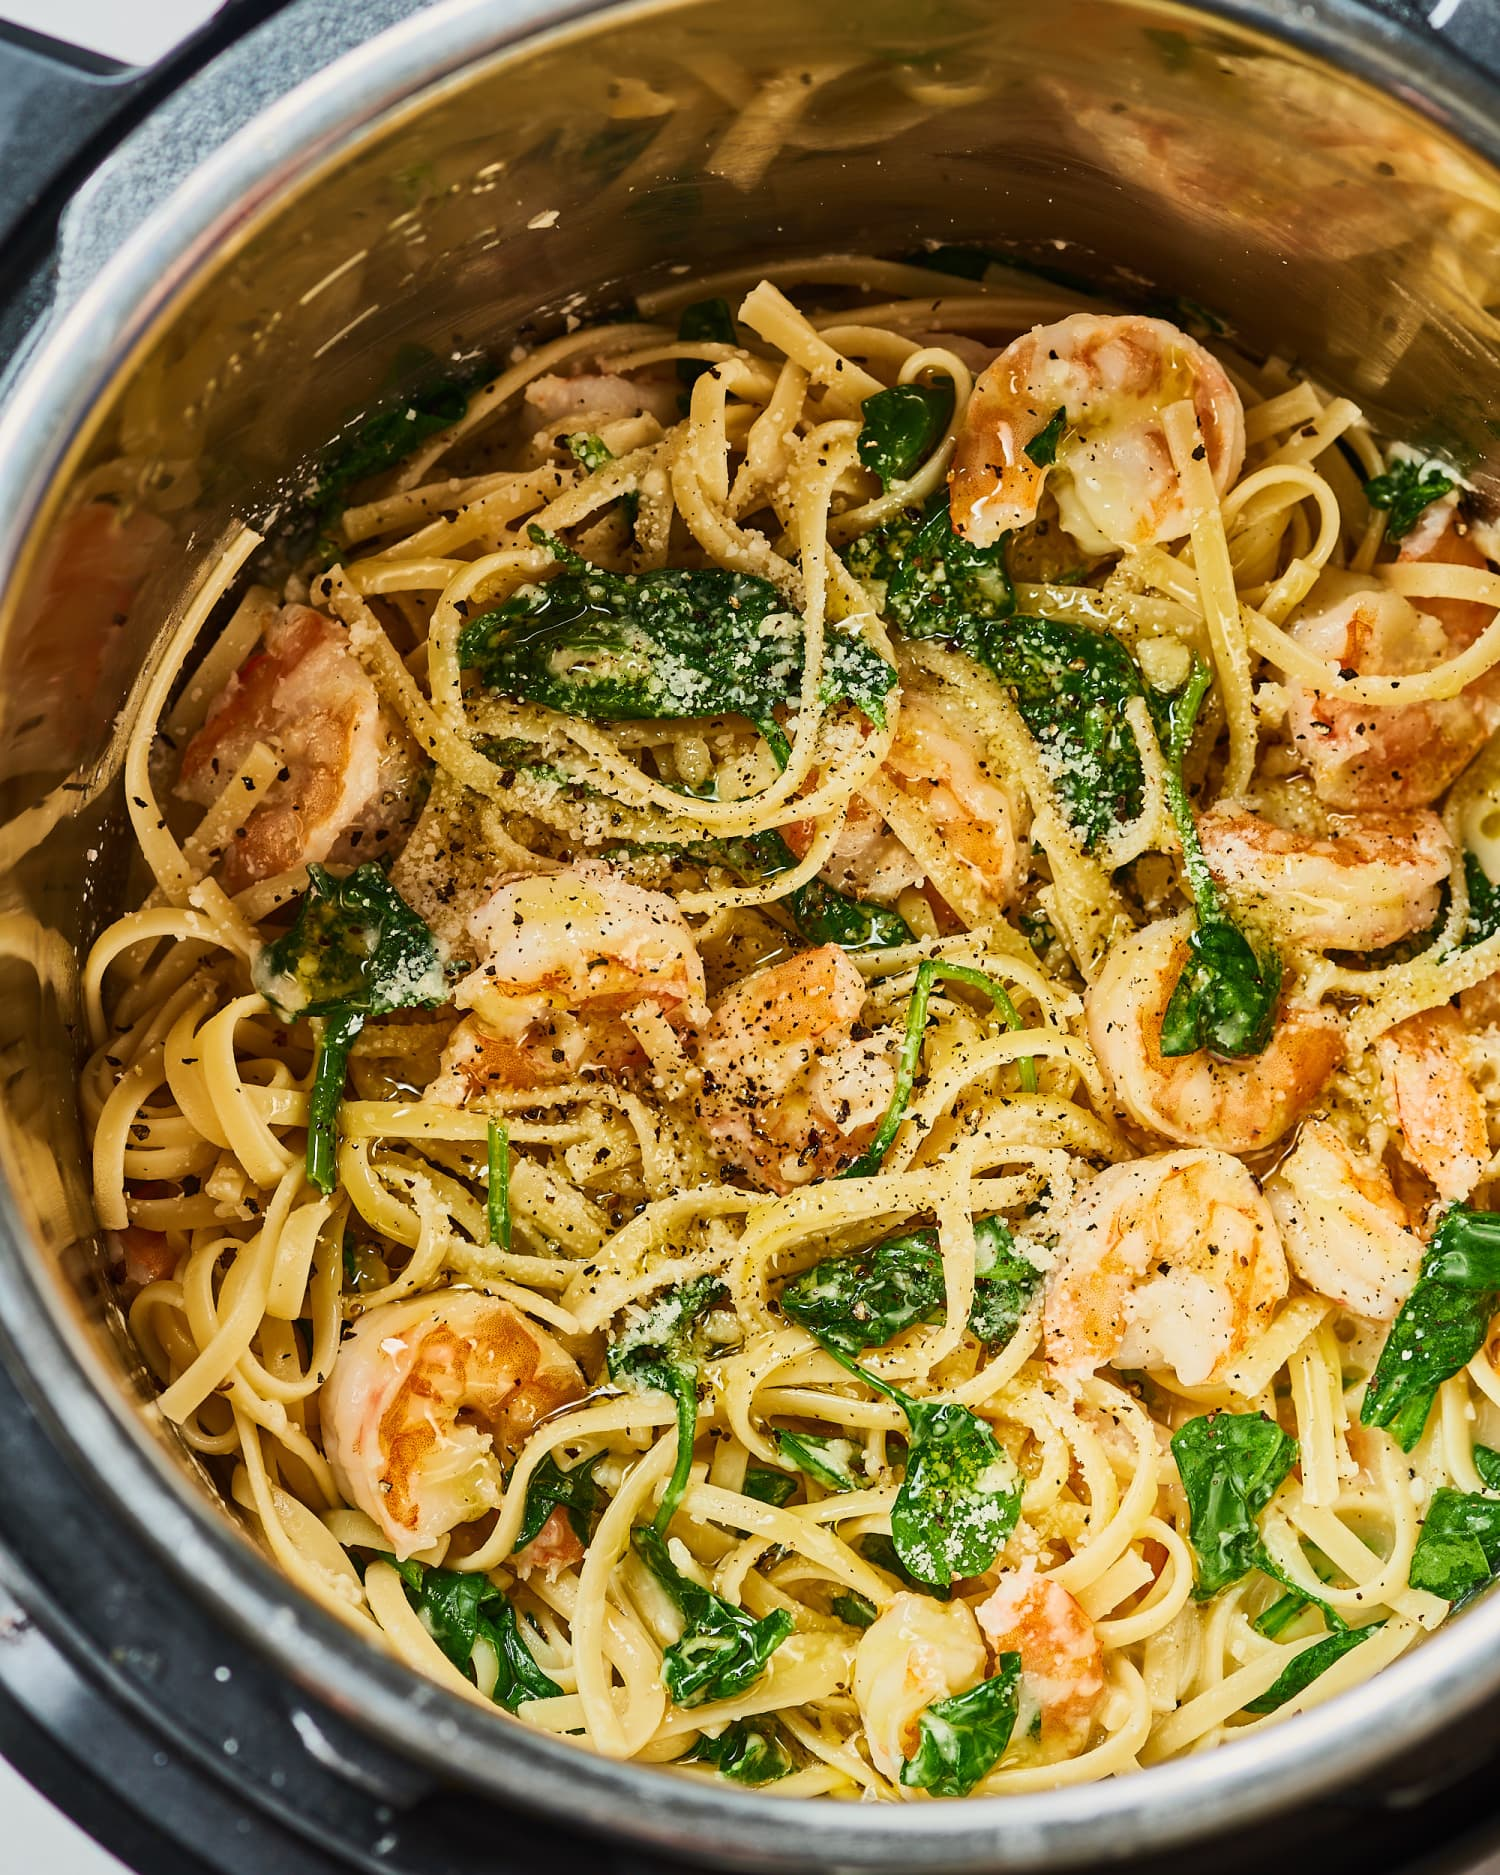 Memorize These 5 (Super-Easy) Instant Pot Pasta Recipes Immediately